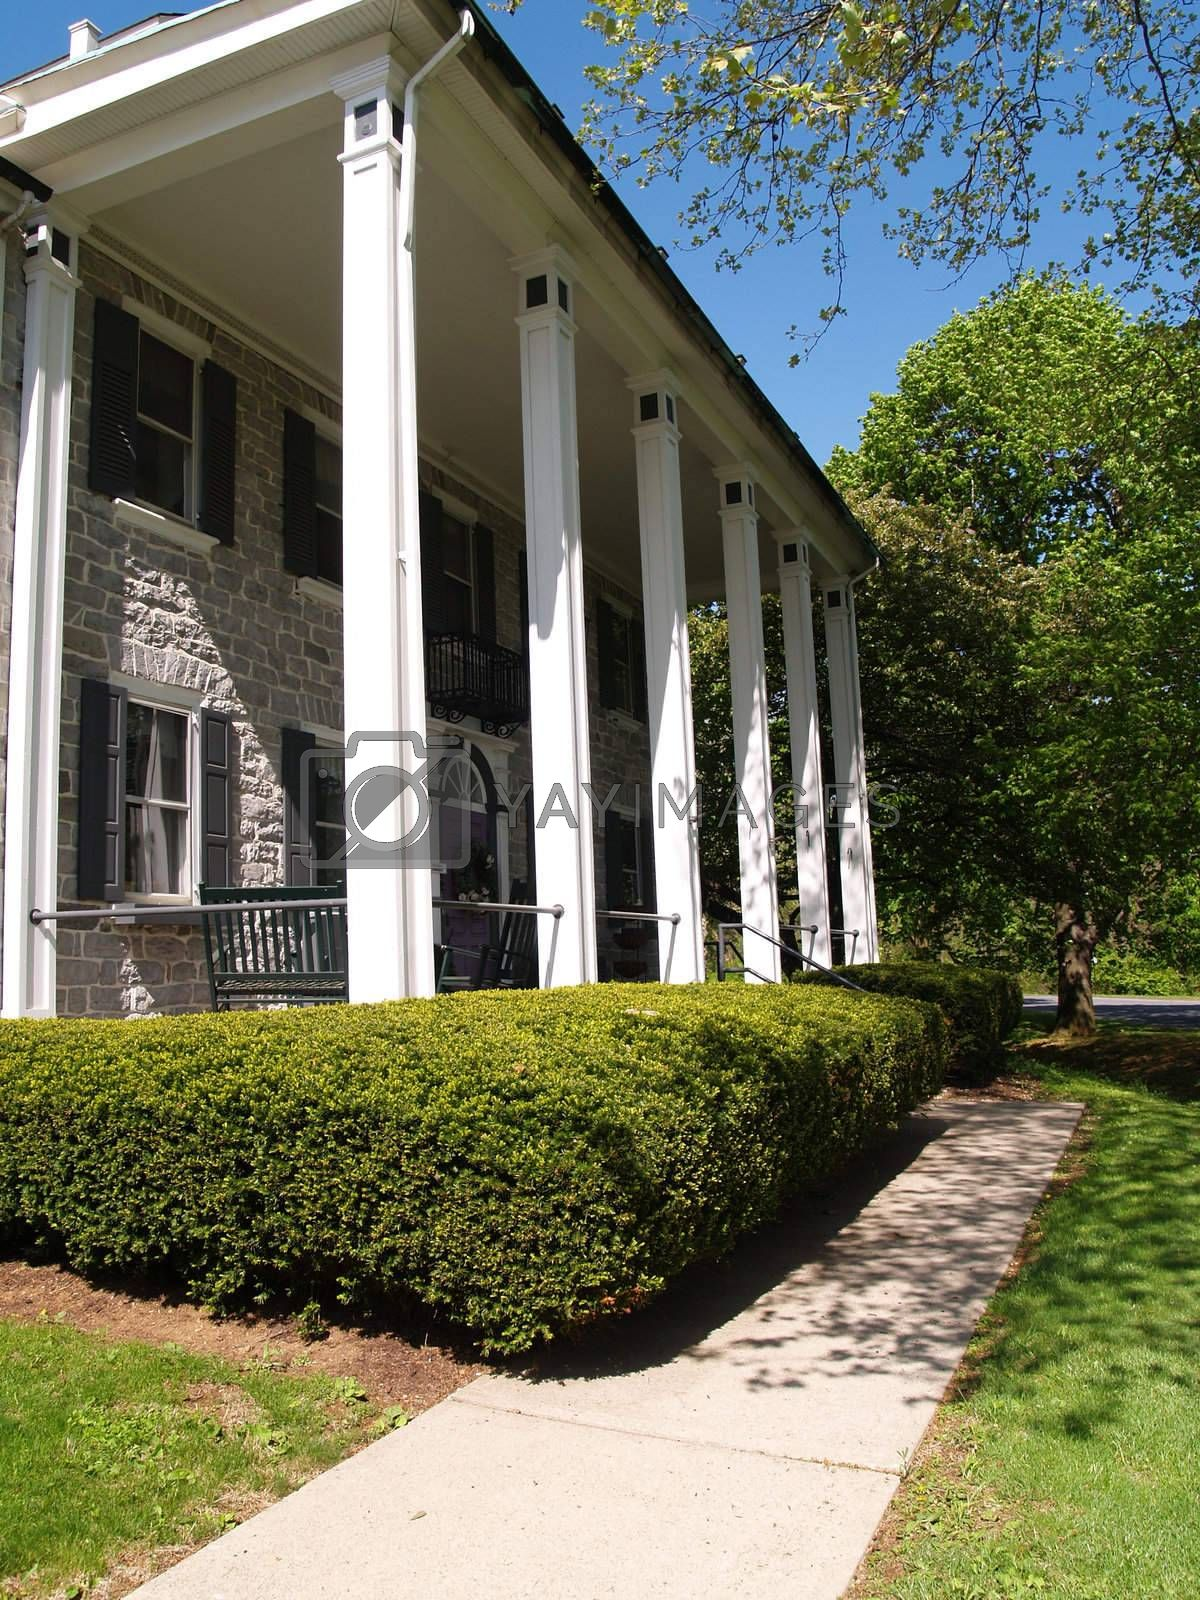 a large front porch with columns